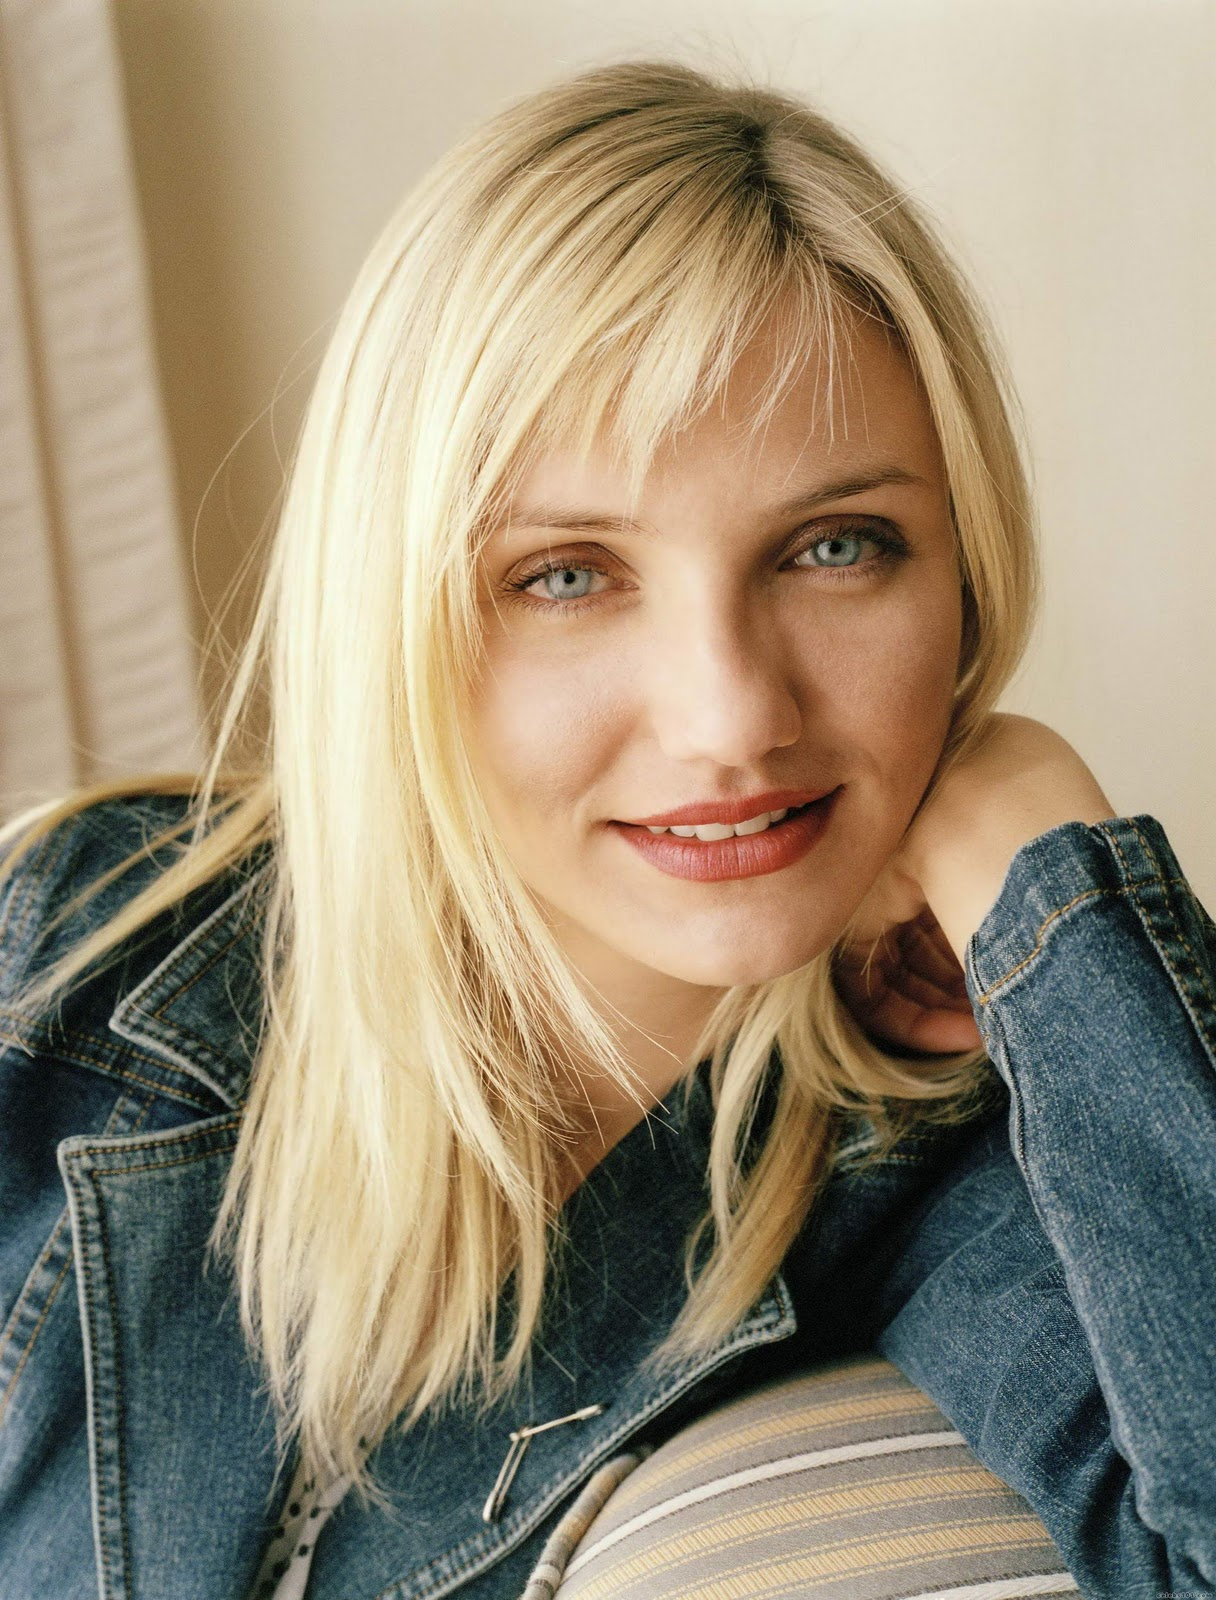 cameron diaz actress profile bio and photos images 2012 hollywood. Black Bedroom Furniture Sets. Home Design Ideas